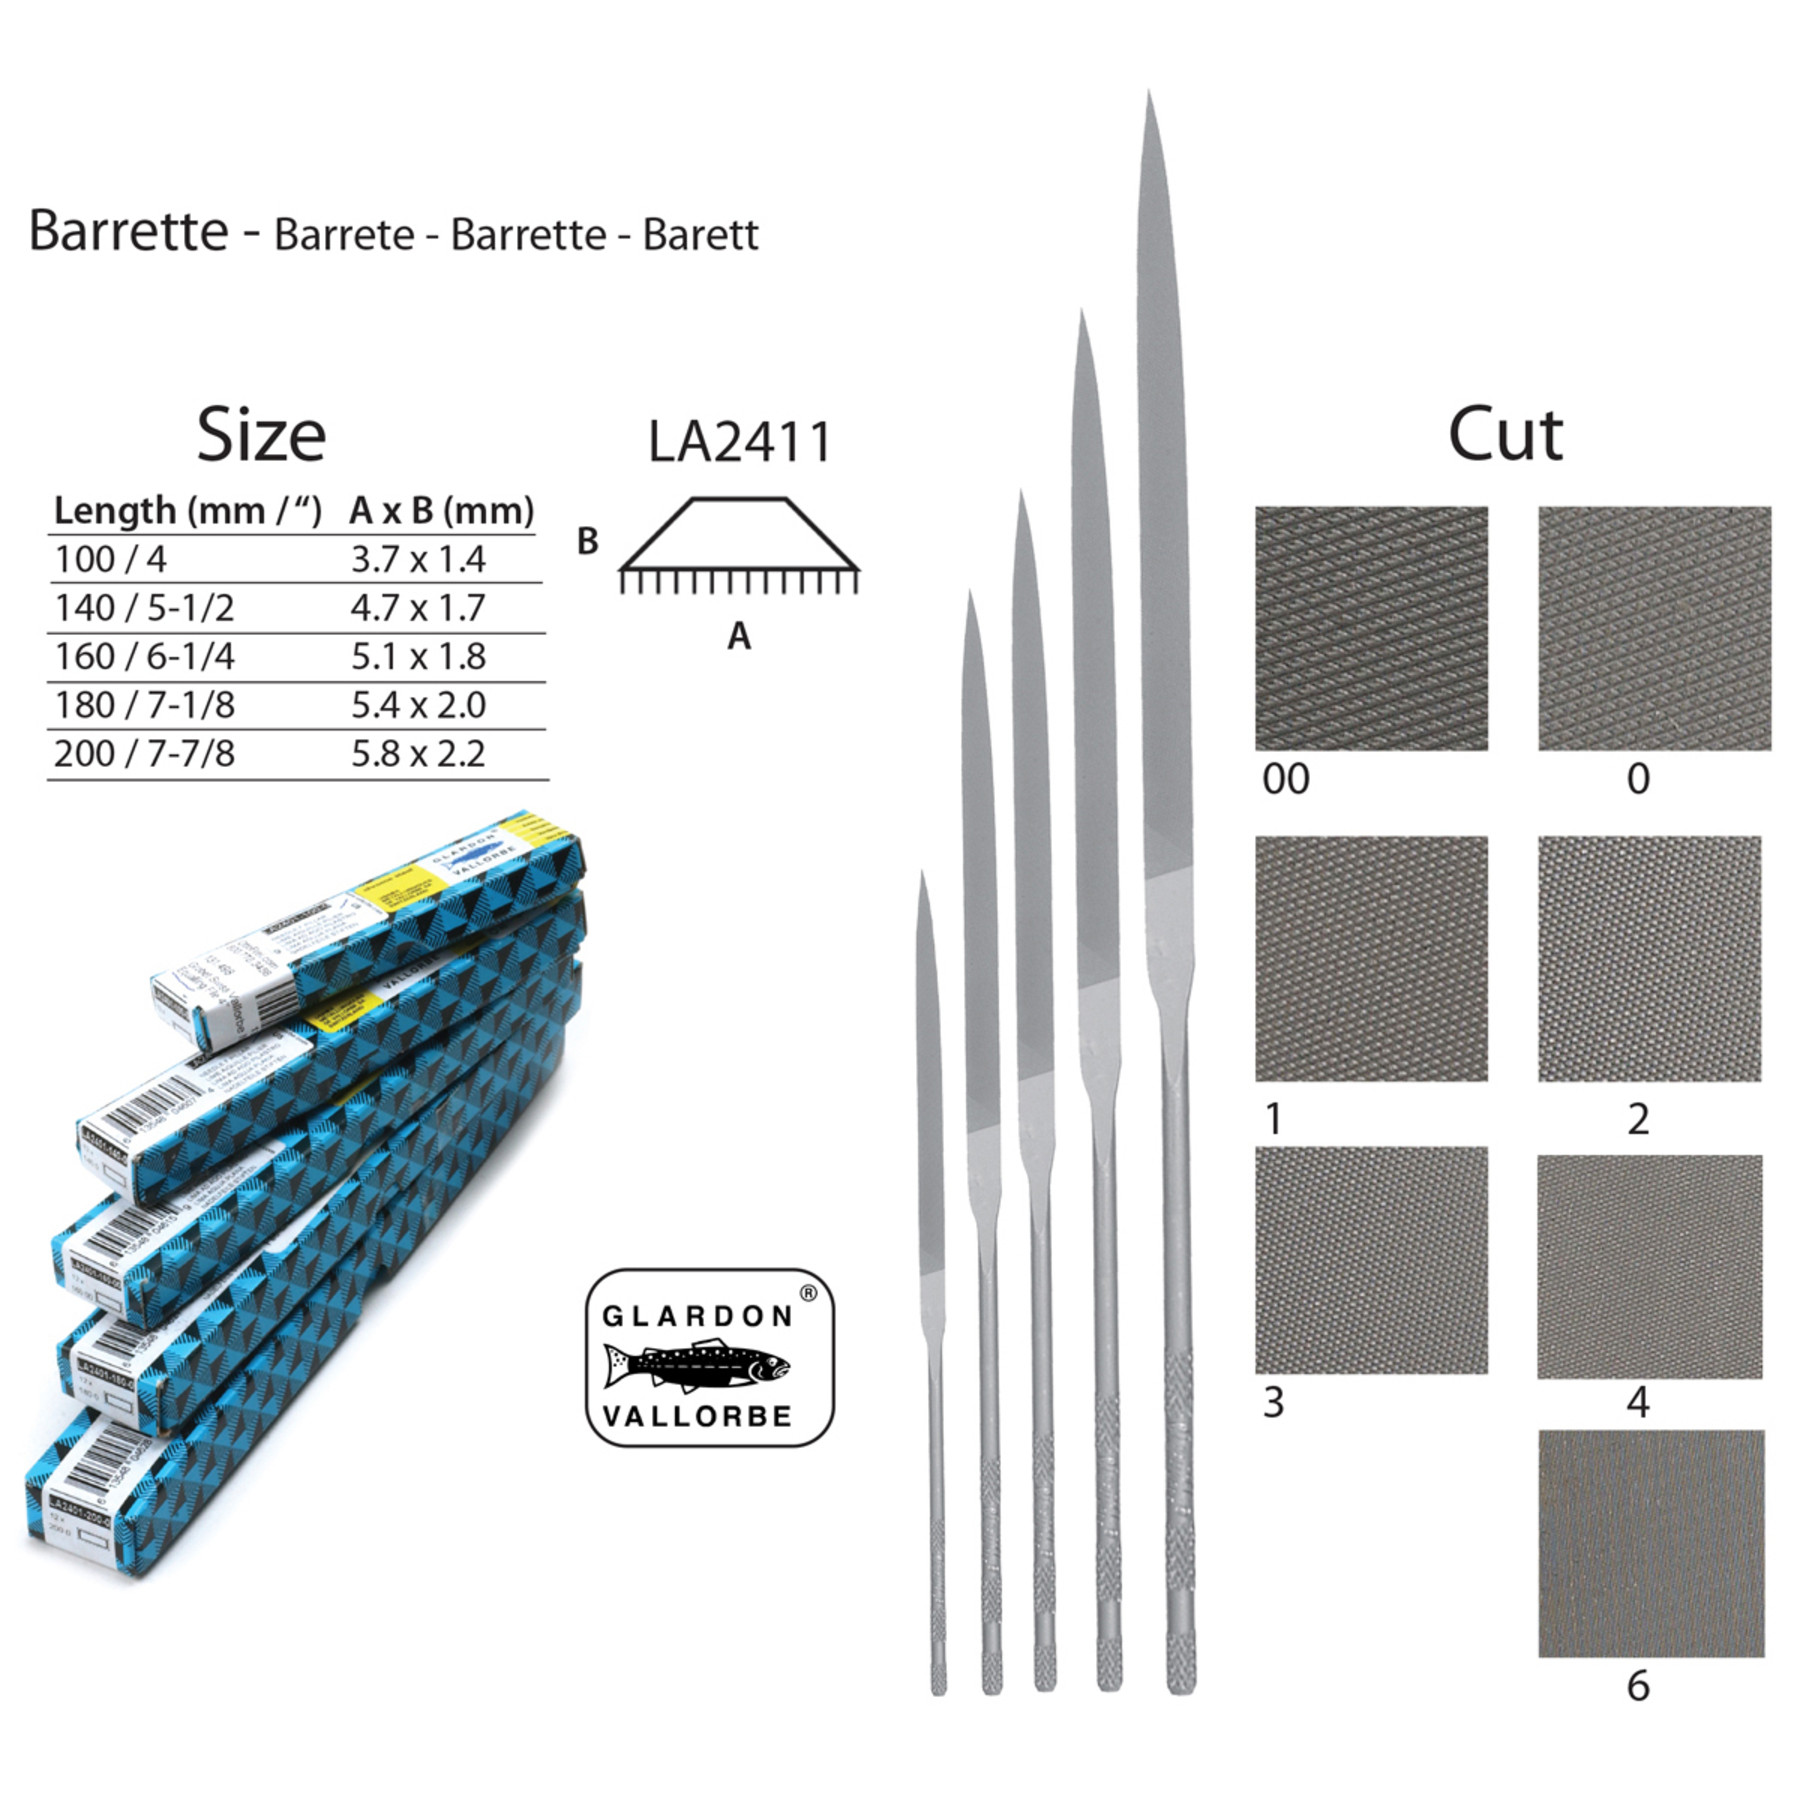 Barrette Needle Files - LA2411